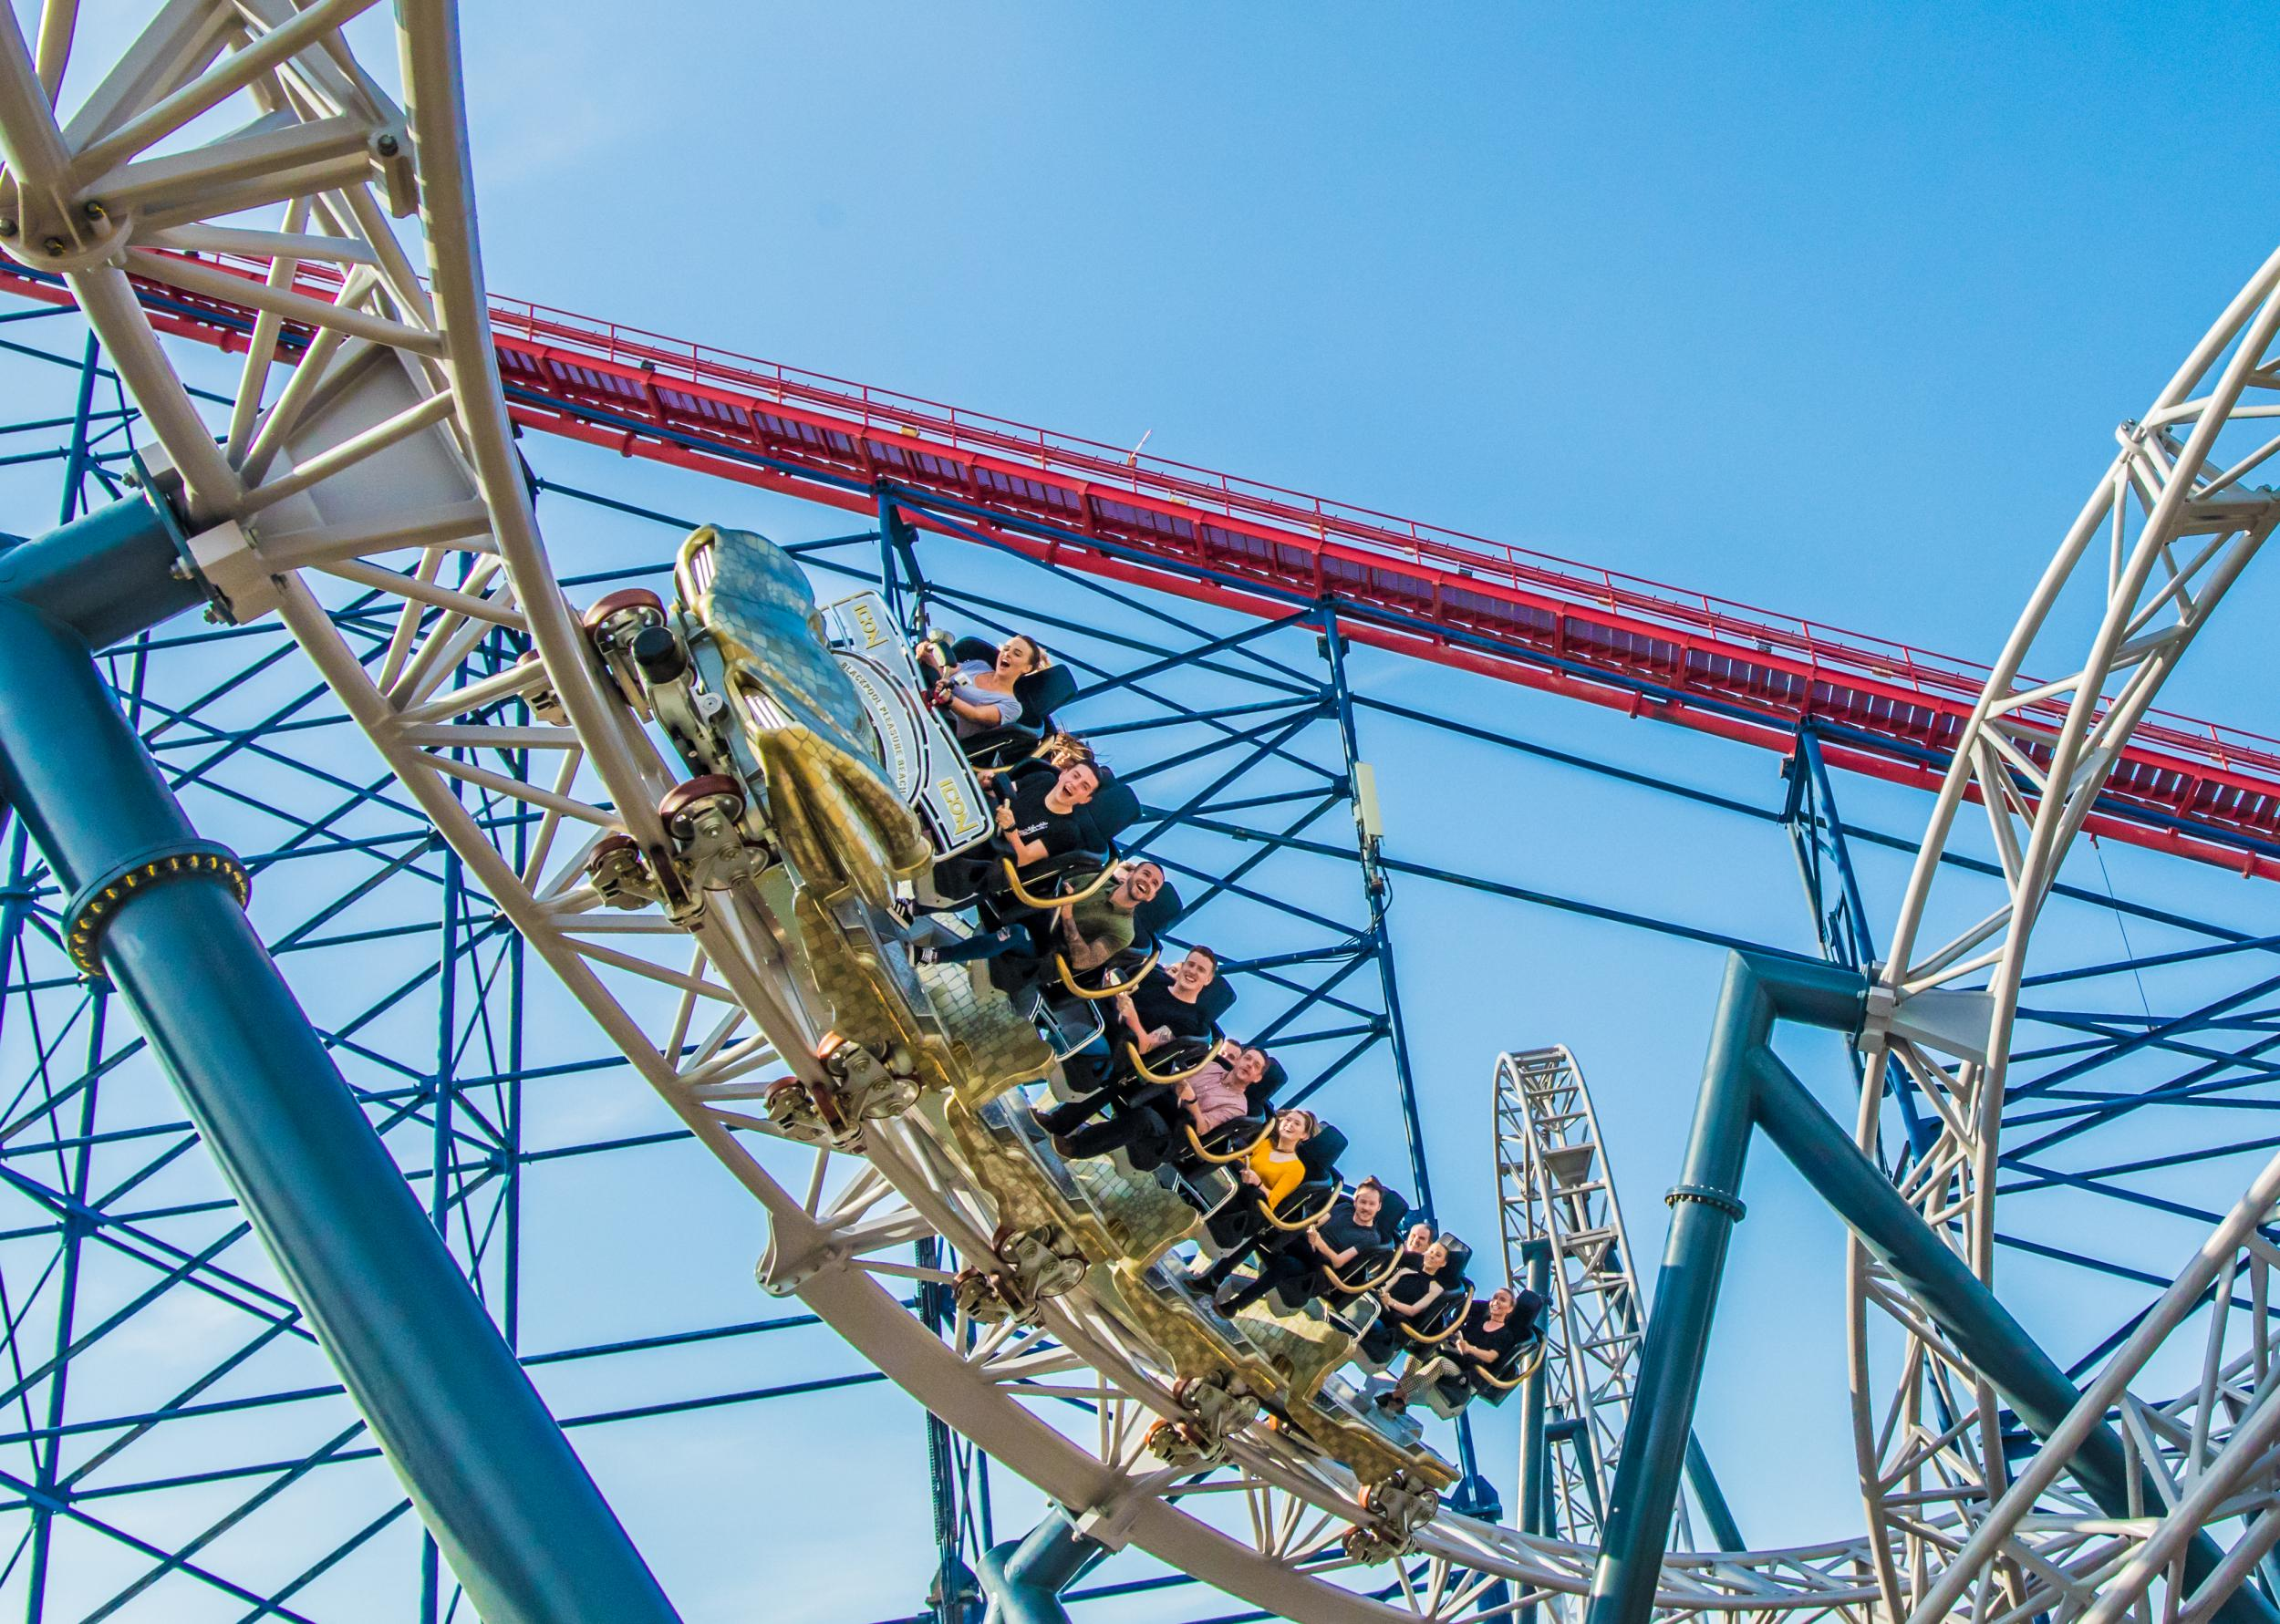 Blackpool's £16m Icon rollercoaster is putting the Pleasure